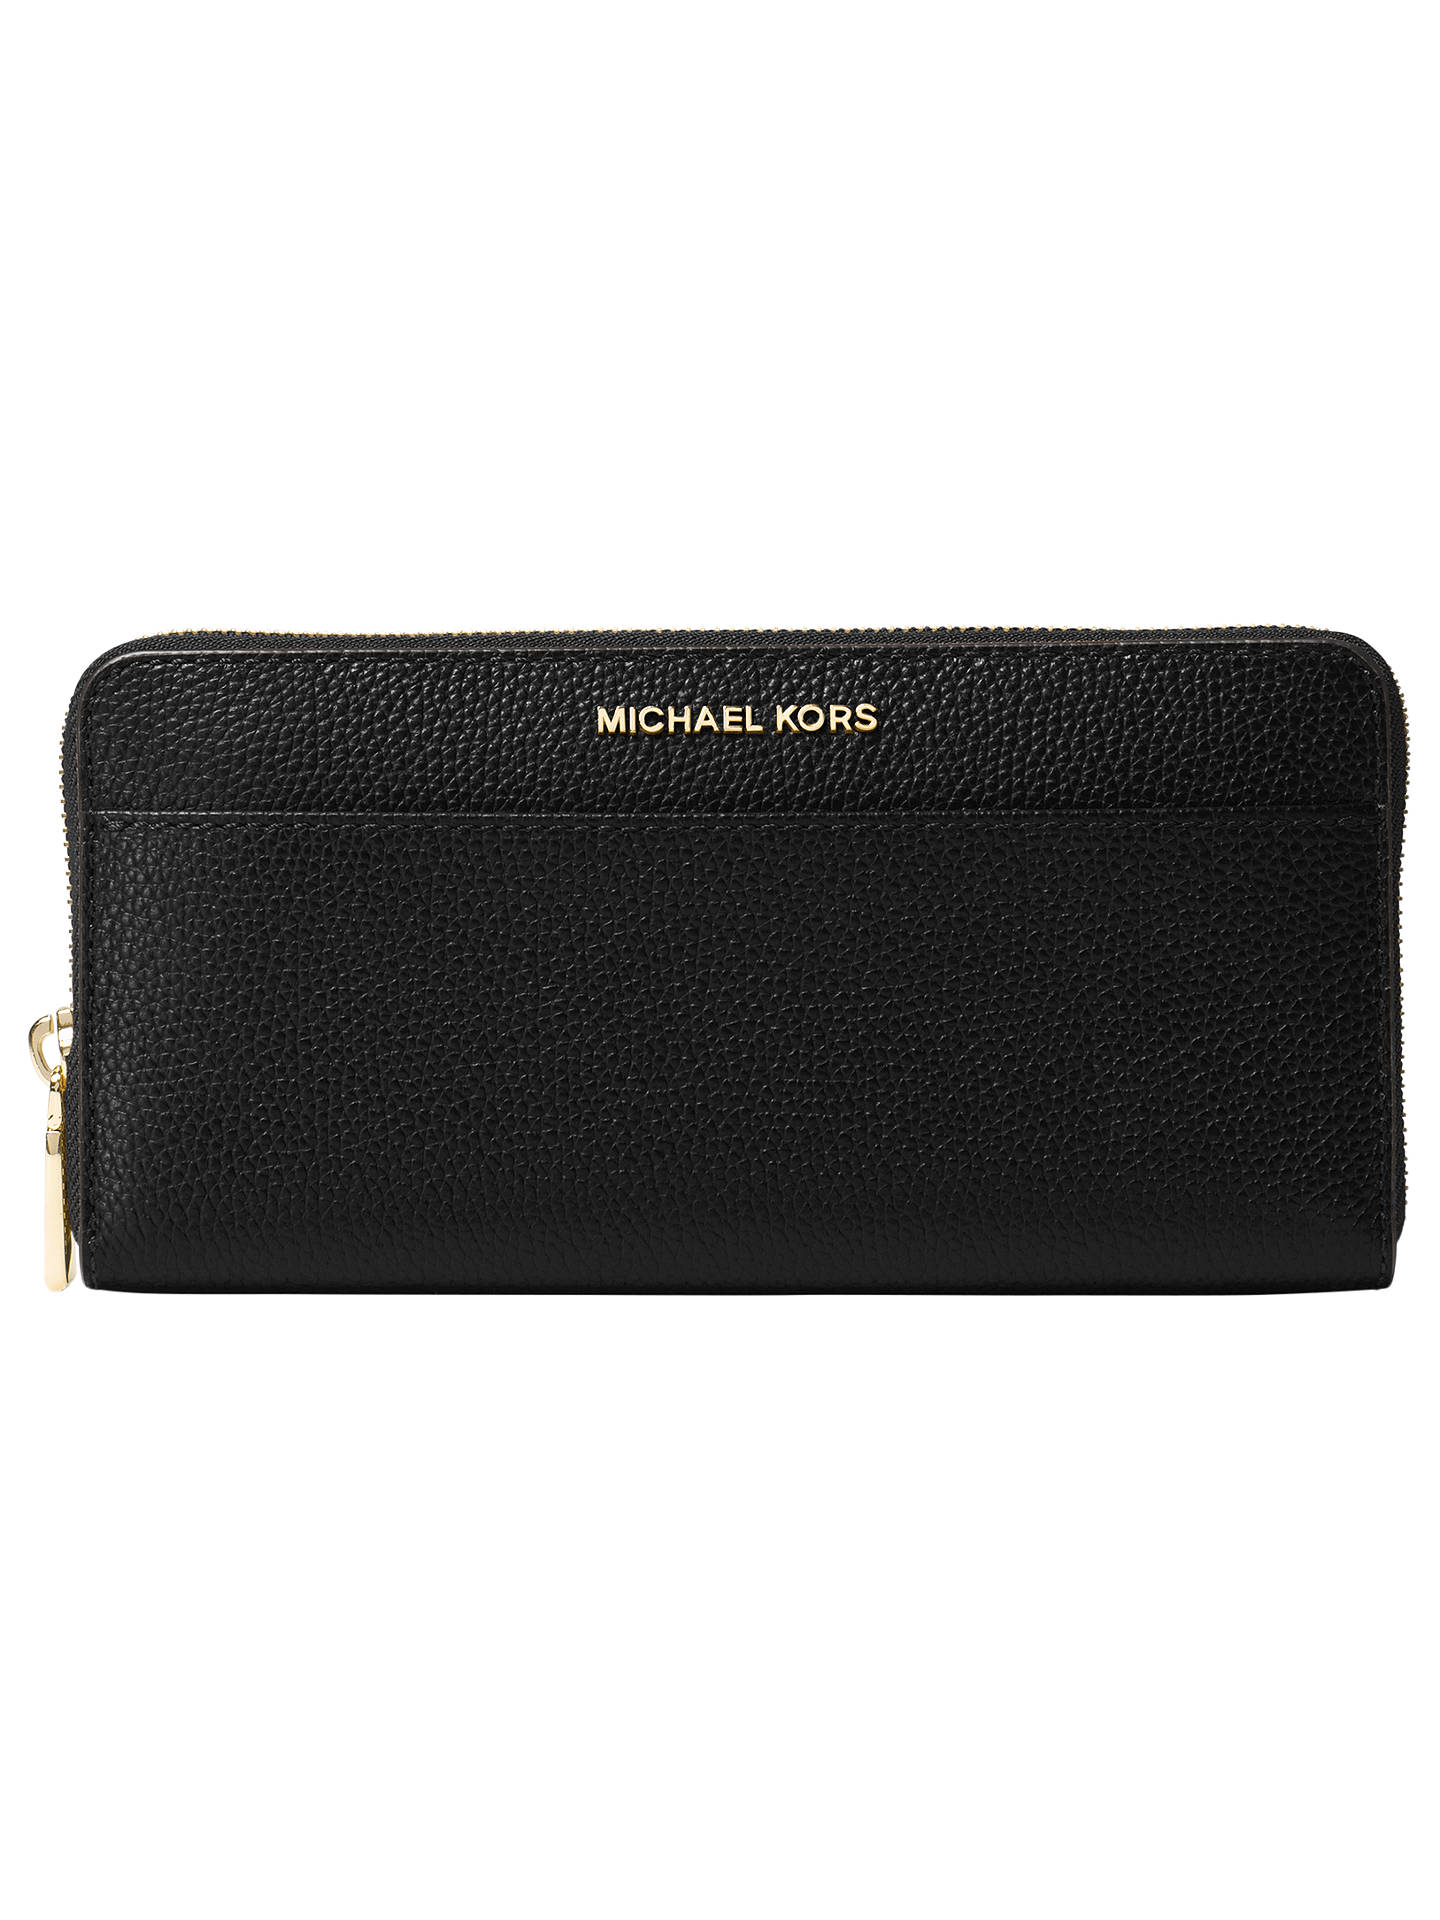 d69c1efde59f Buy MICHAEL Michael Kors Mercer Leather Continental Purse, Black Online at  johnlewis.com ...